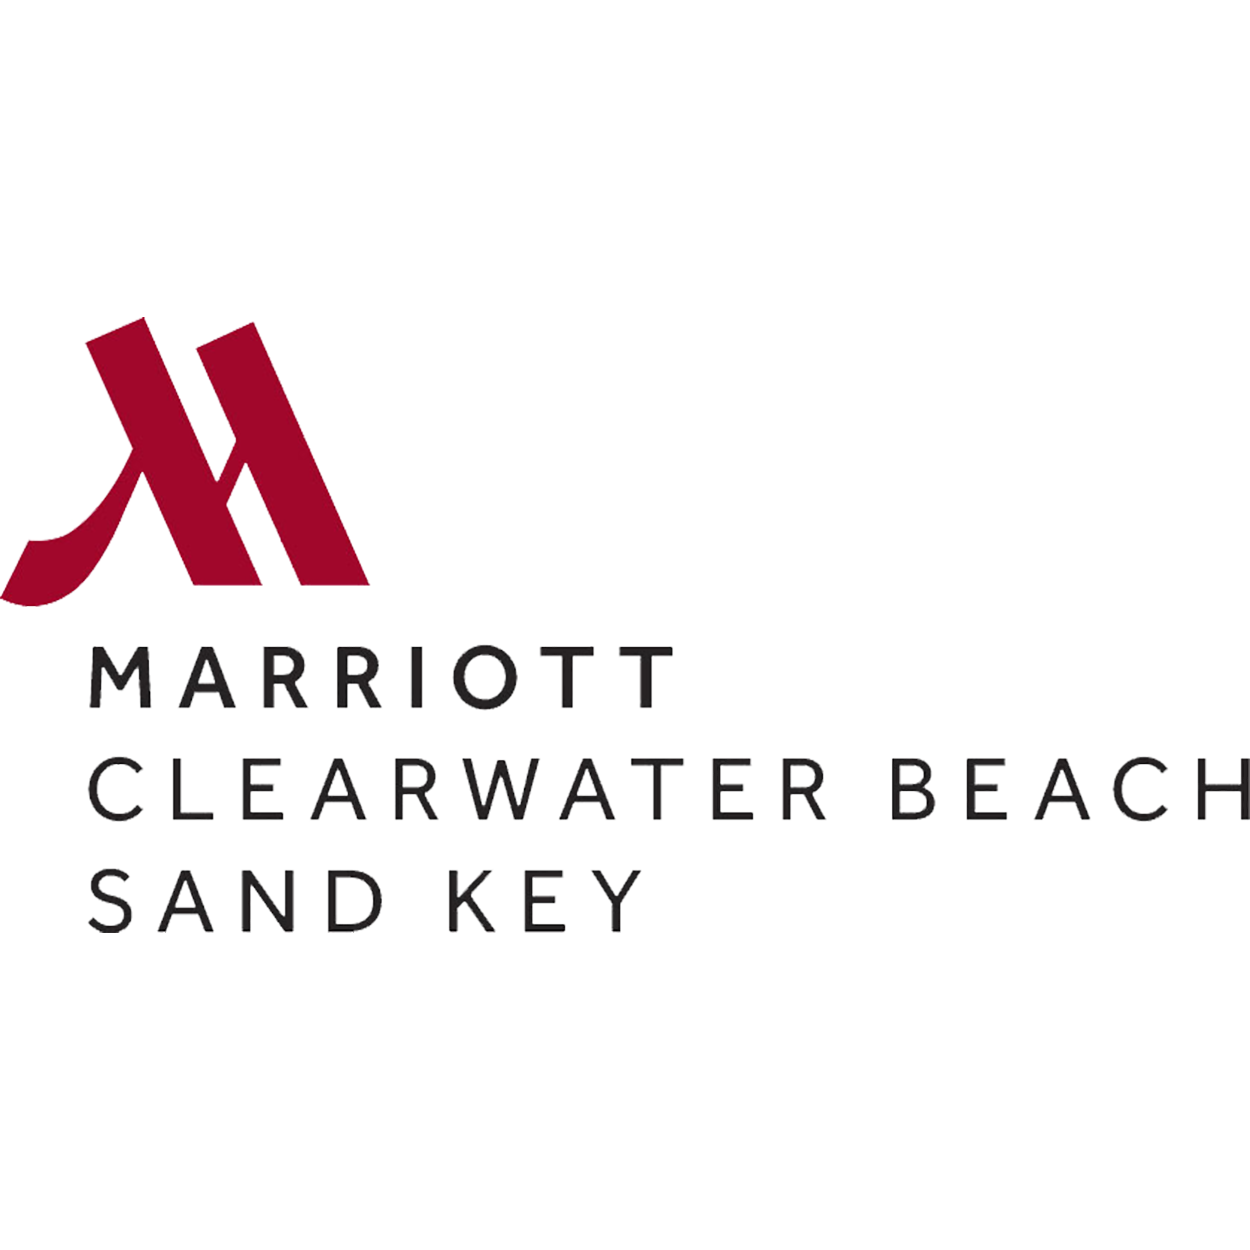 Marriott Suites Sand Key